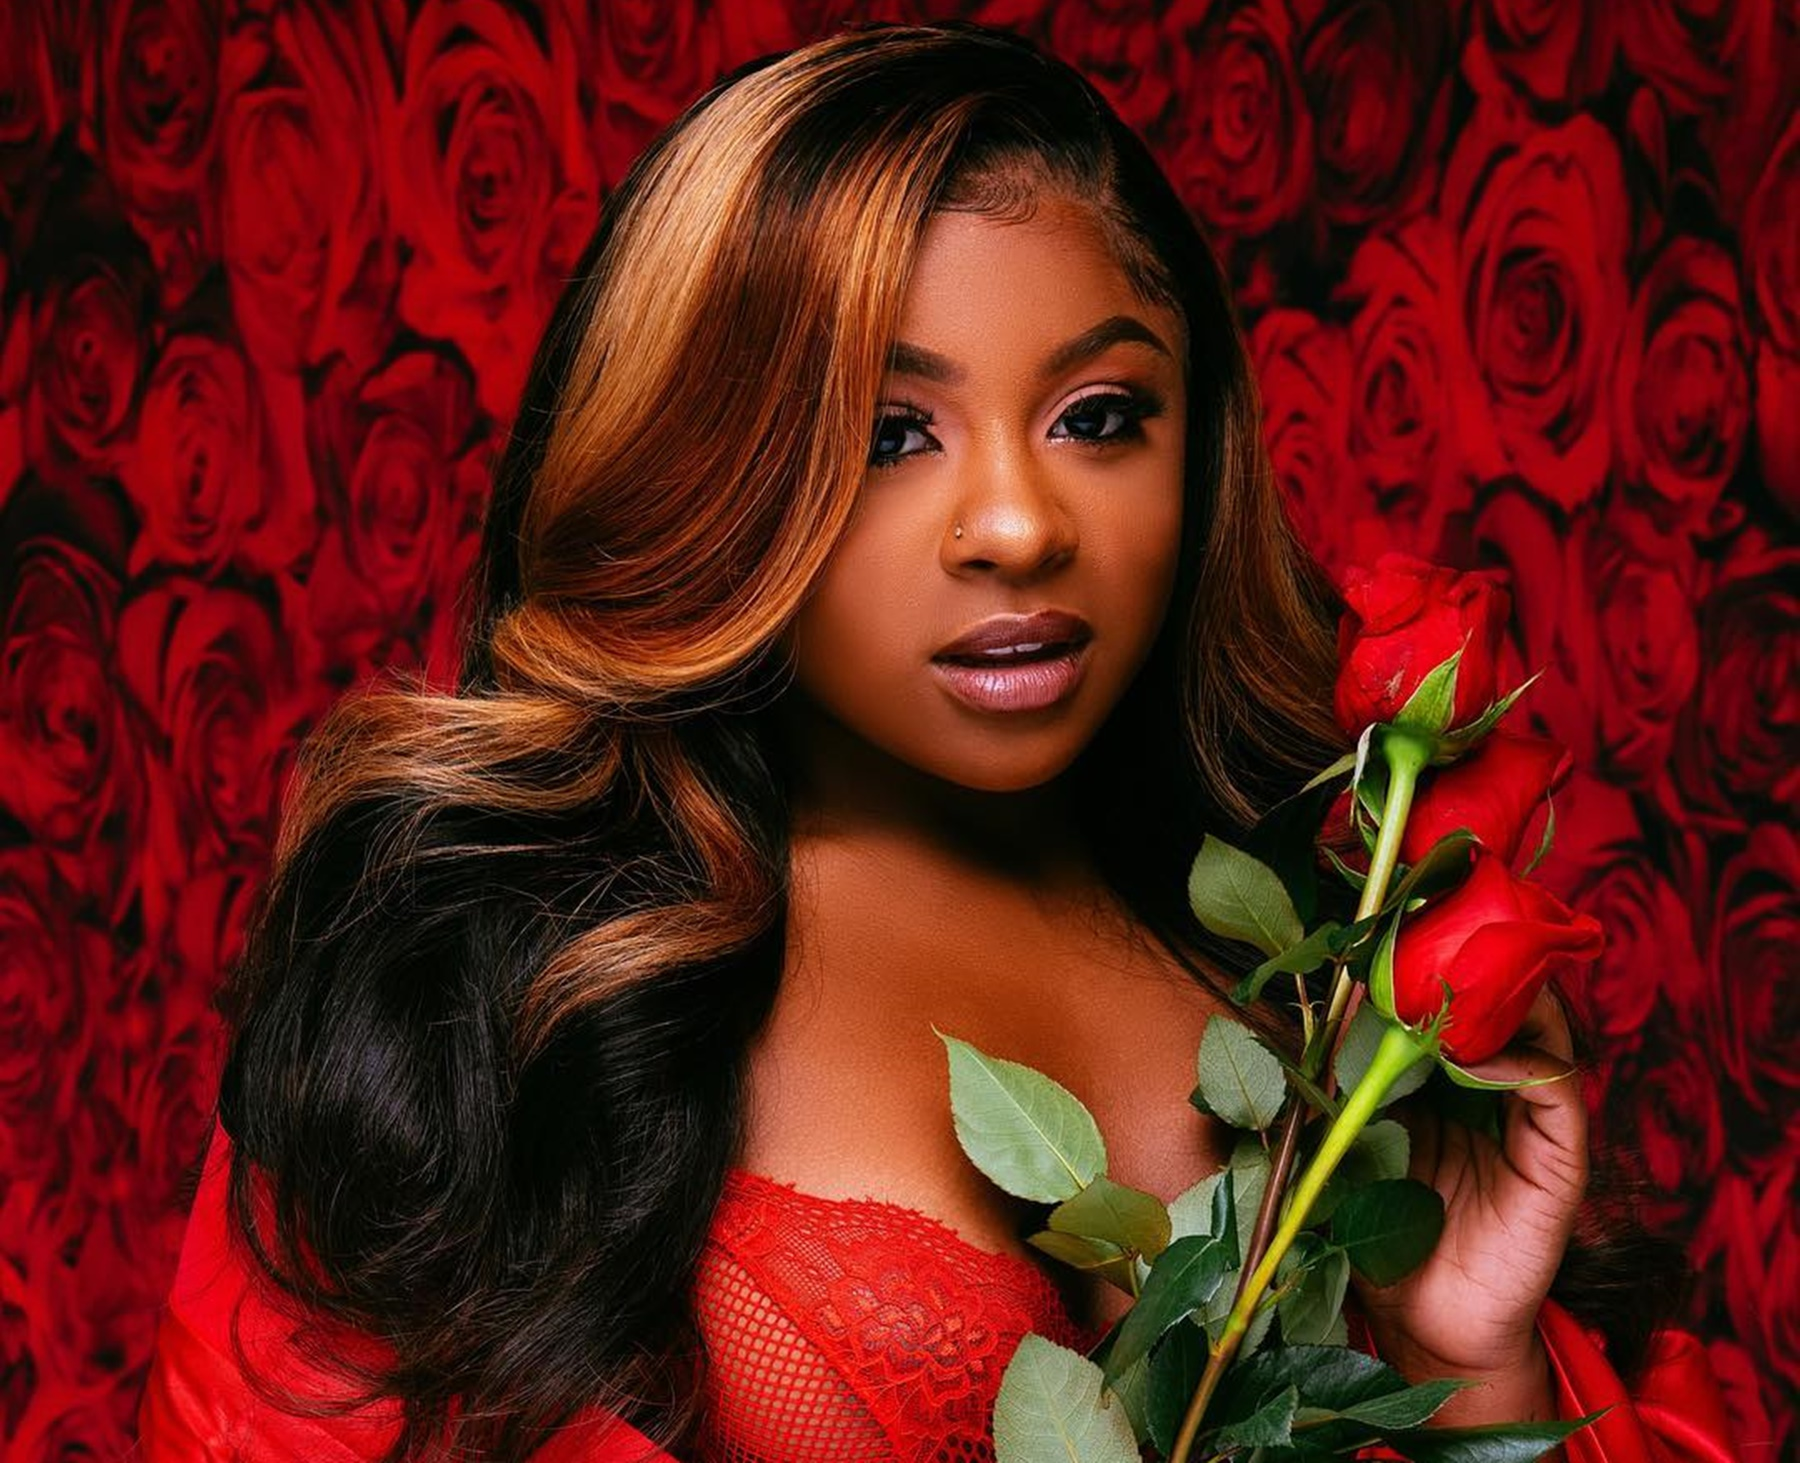 reginae-carters-fans-praise-her-beauty-after-she-gets-body-shamed-by-haters